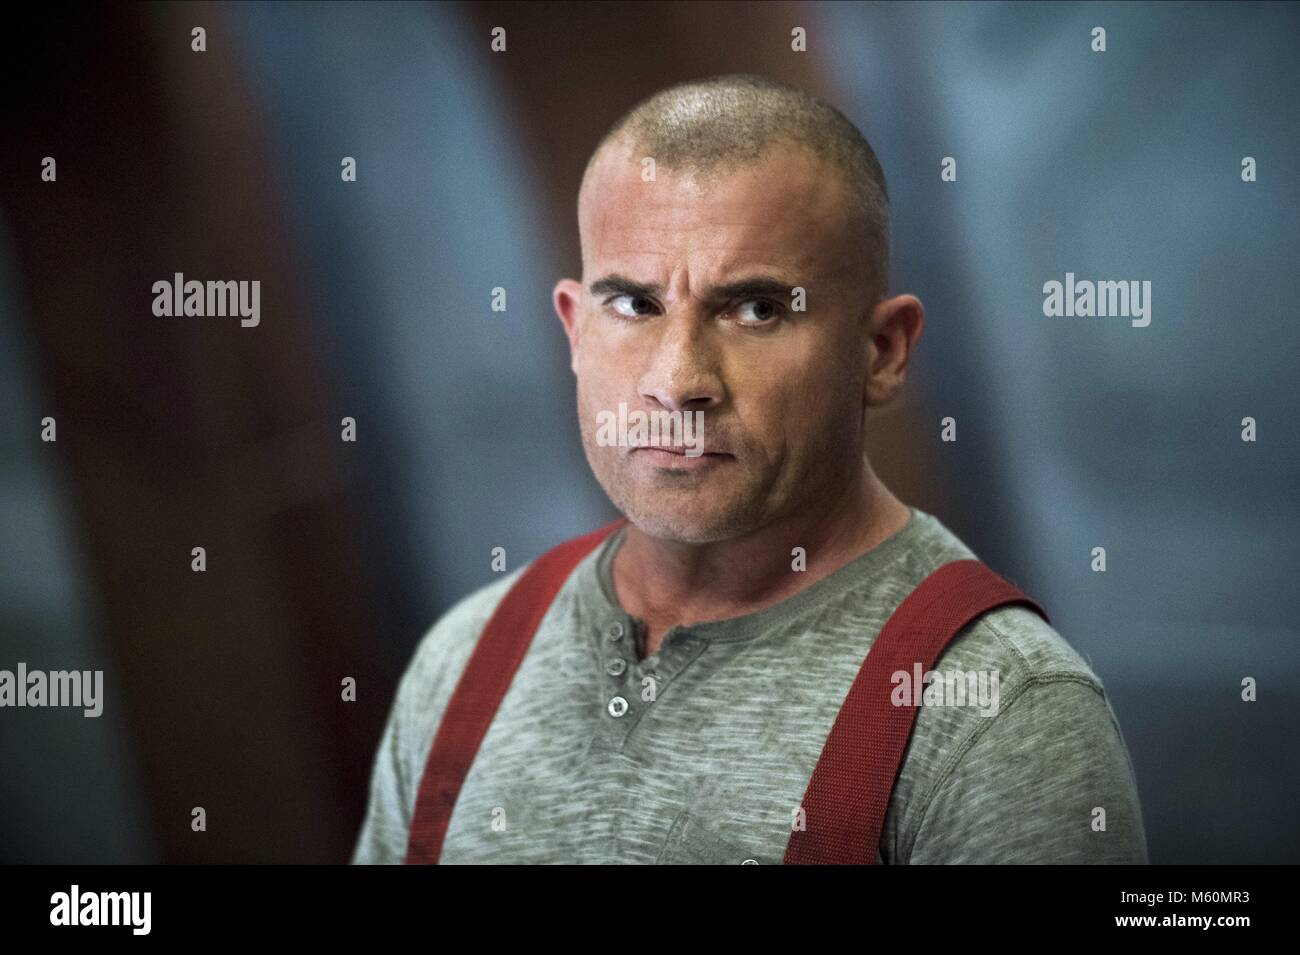 DOMINIC PURCELL LEGENDS OF TOMORROW (2016) - Stock Image